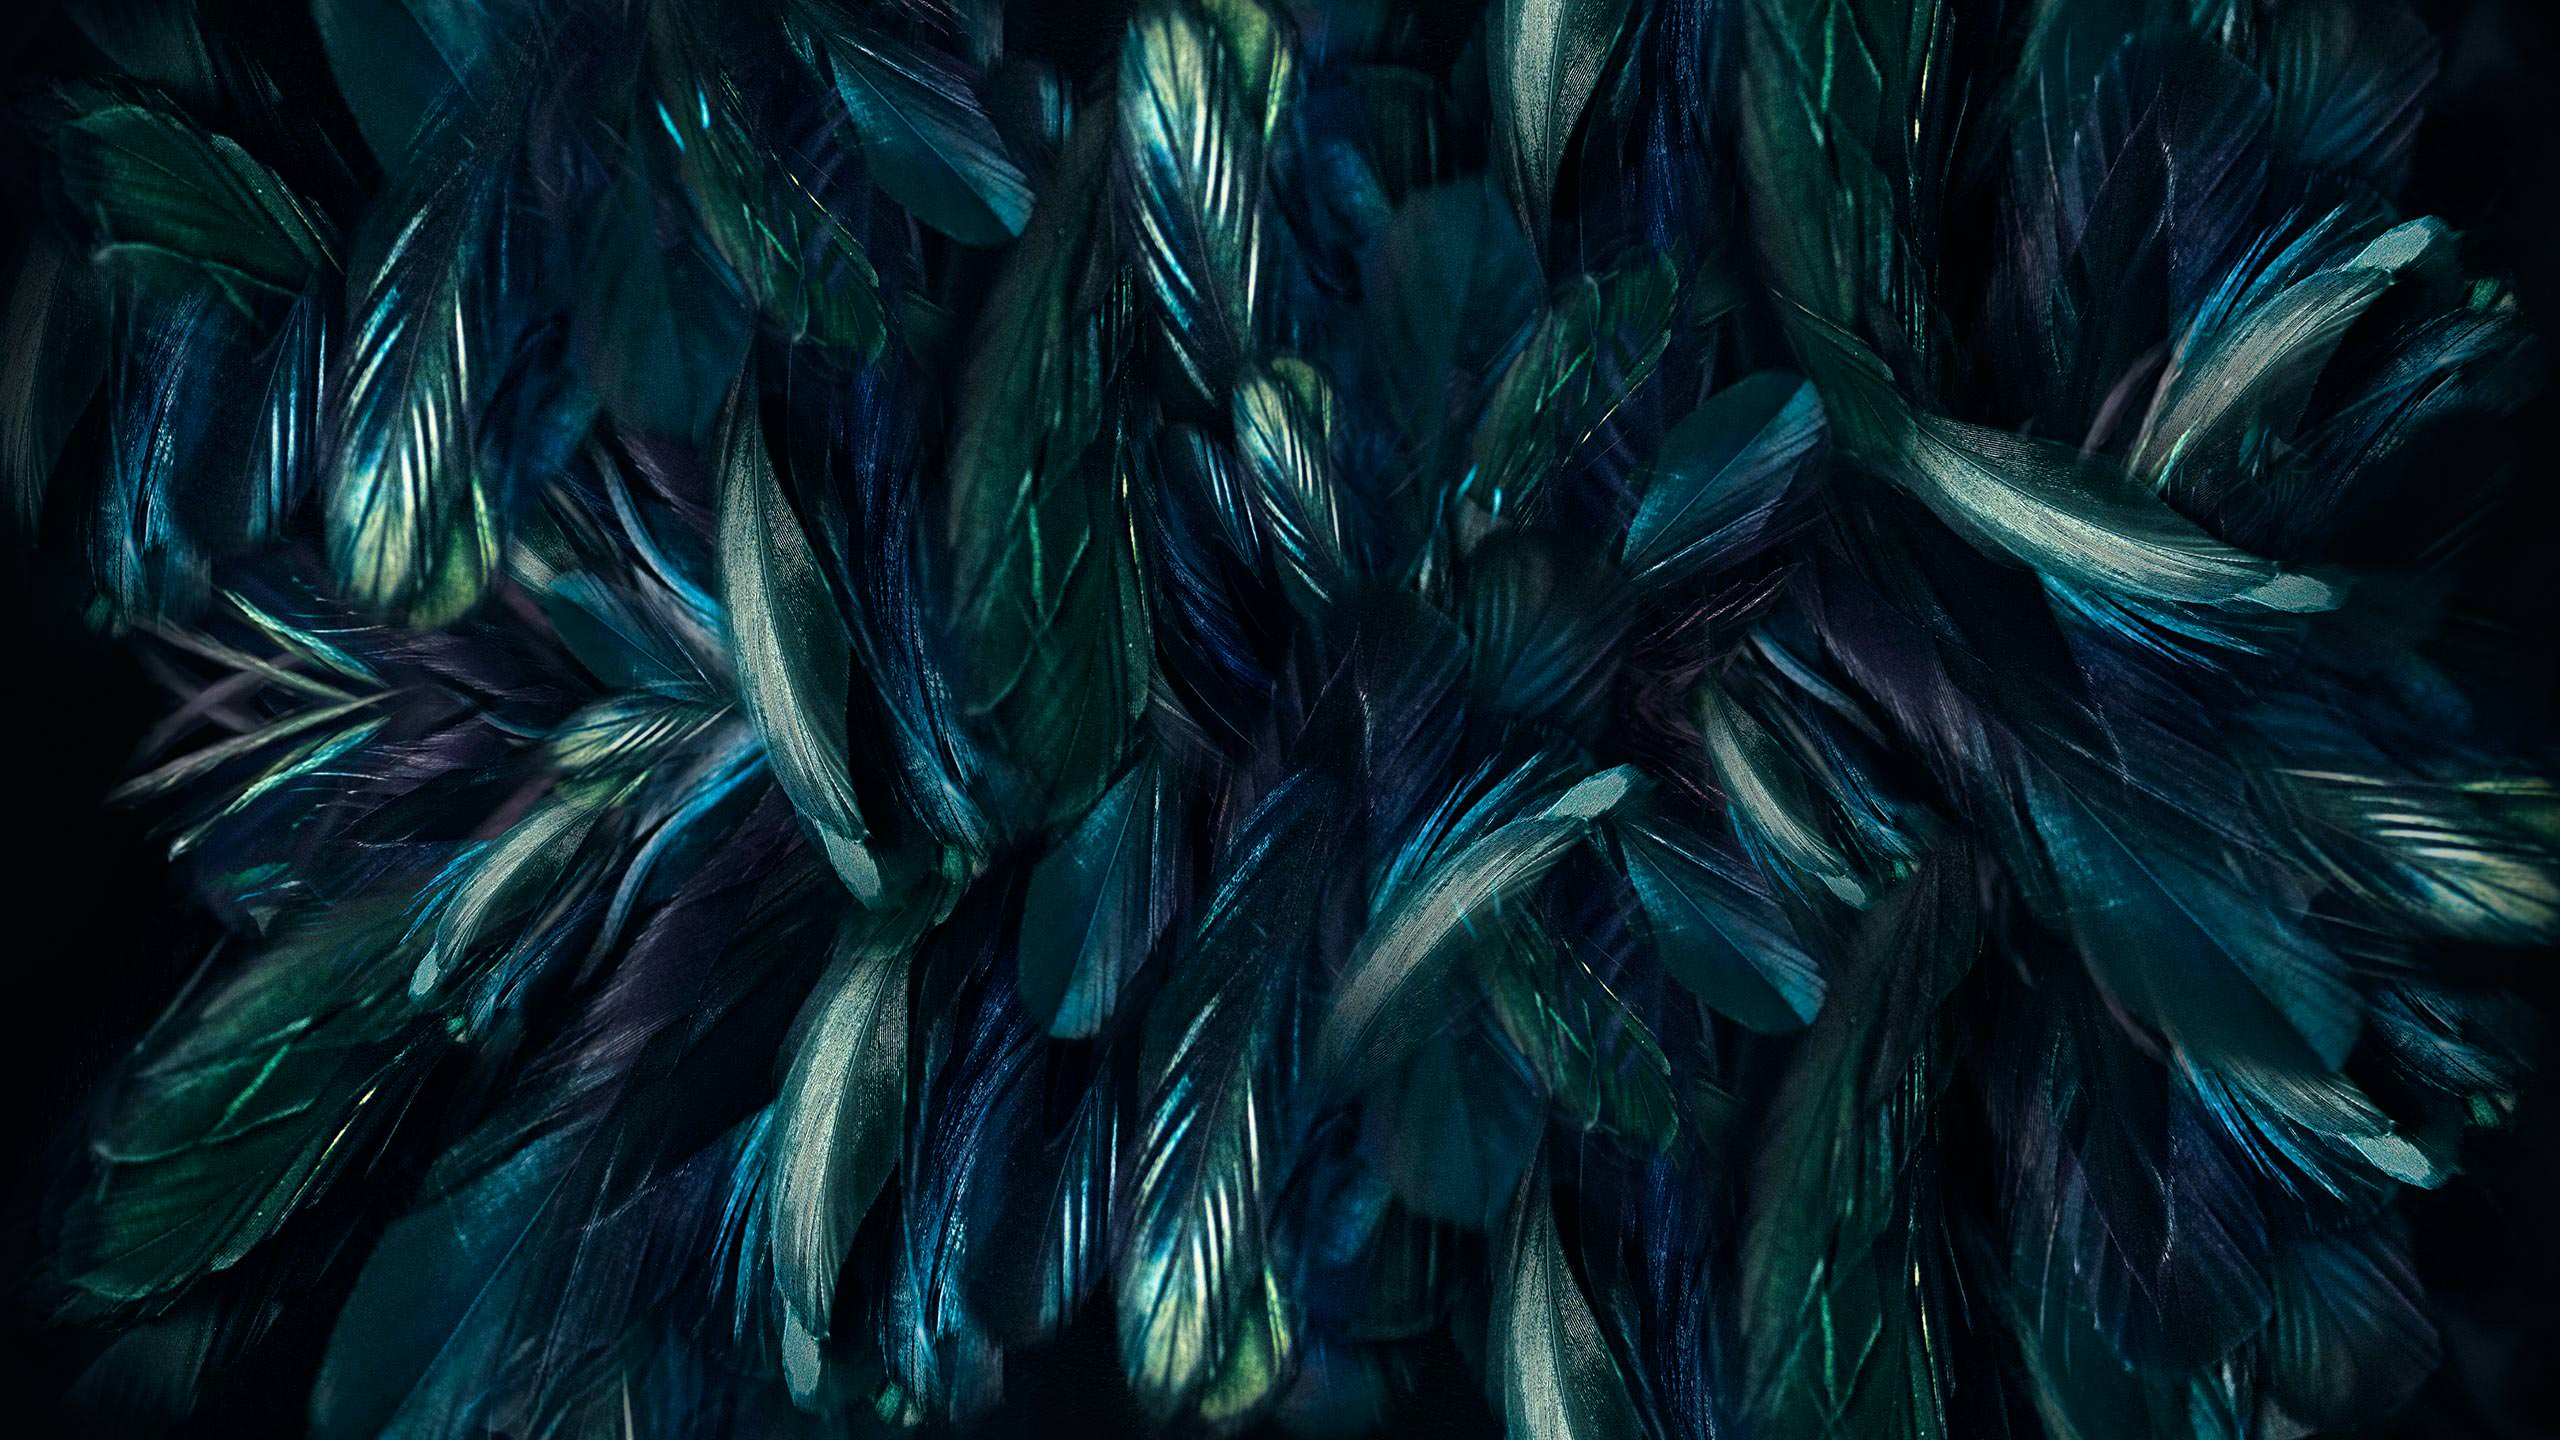 Adobe Lightroom Textures of Feathers